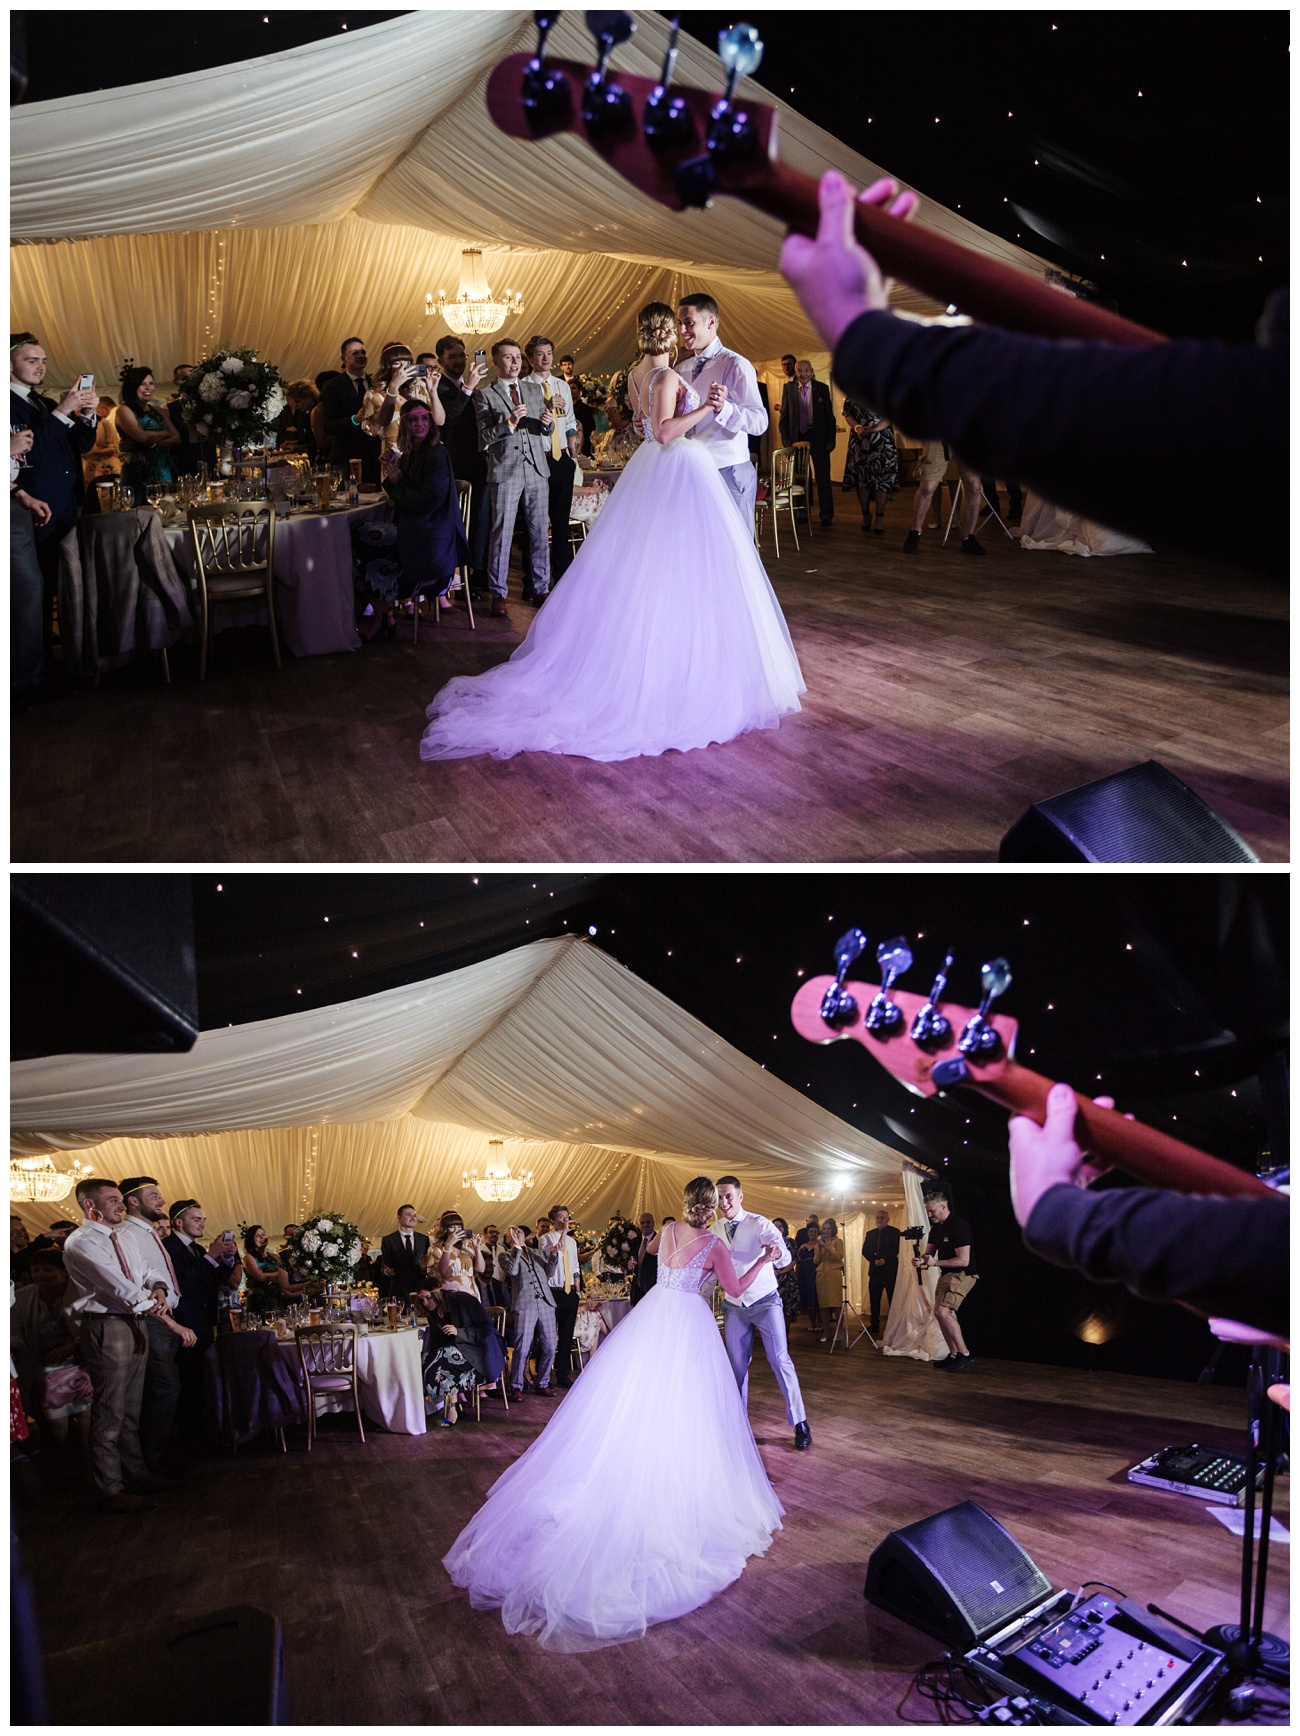 Bride and groom dancing for the their first dance